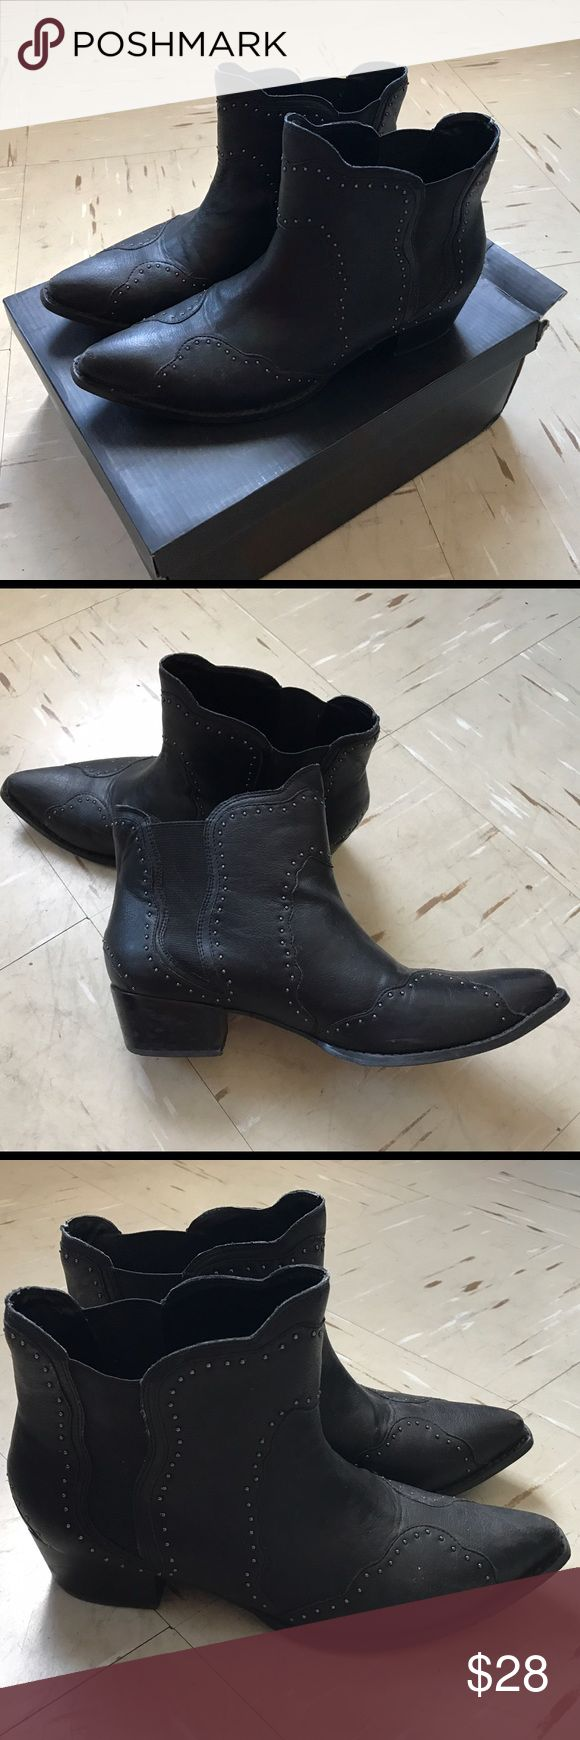 Black low ankle boot This ankle boot has the shape of a cow boy boot. It's pointy in the front and has detailing all around. The boot is in VERY GOOD CONDITION. Can pair up with anything and an eye catcher. I would receive many compliments when wearing them! Nasty Gal Shoes Ankle Boots & Booties